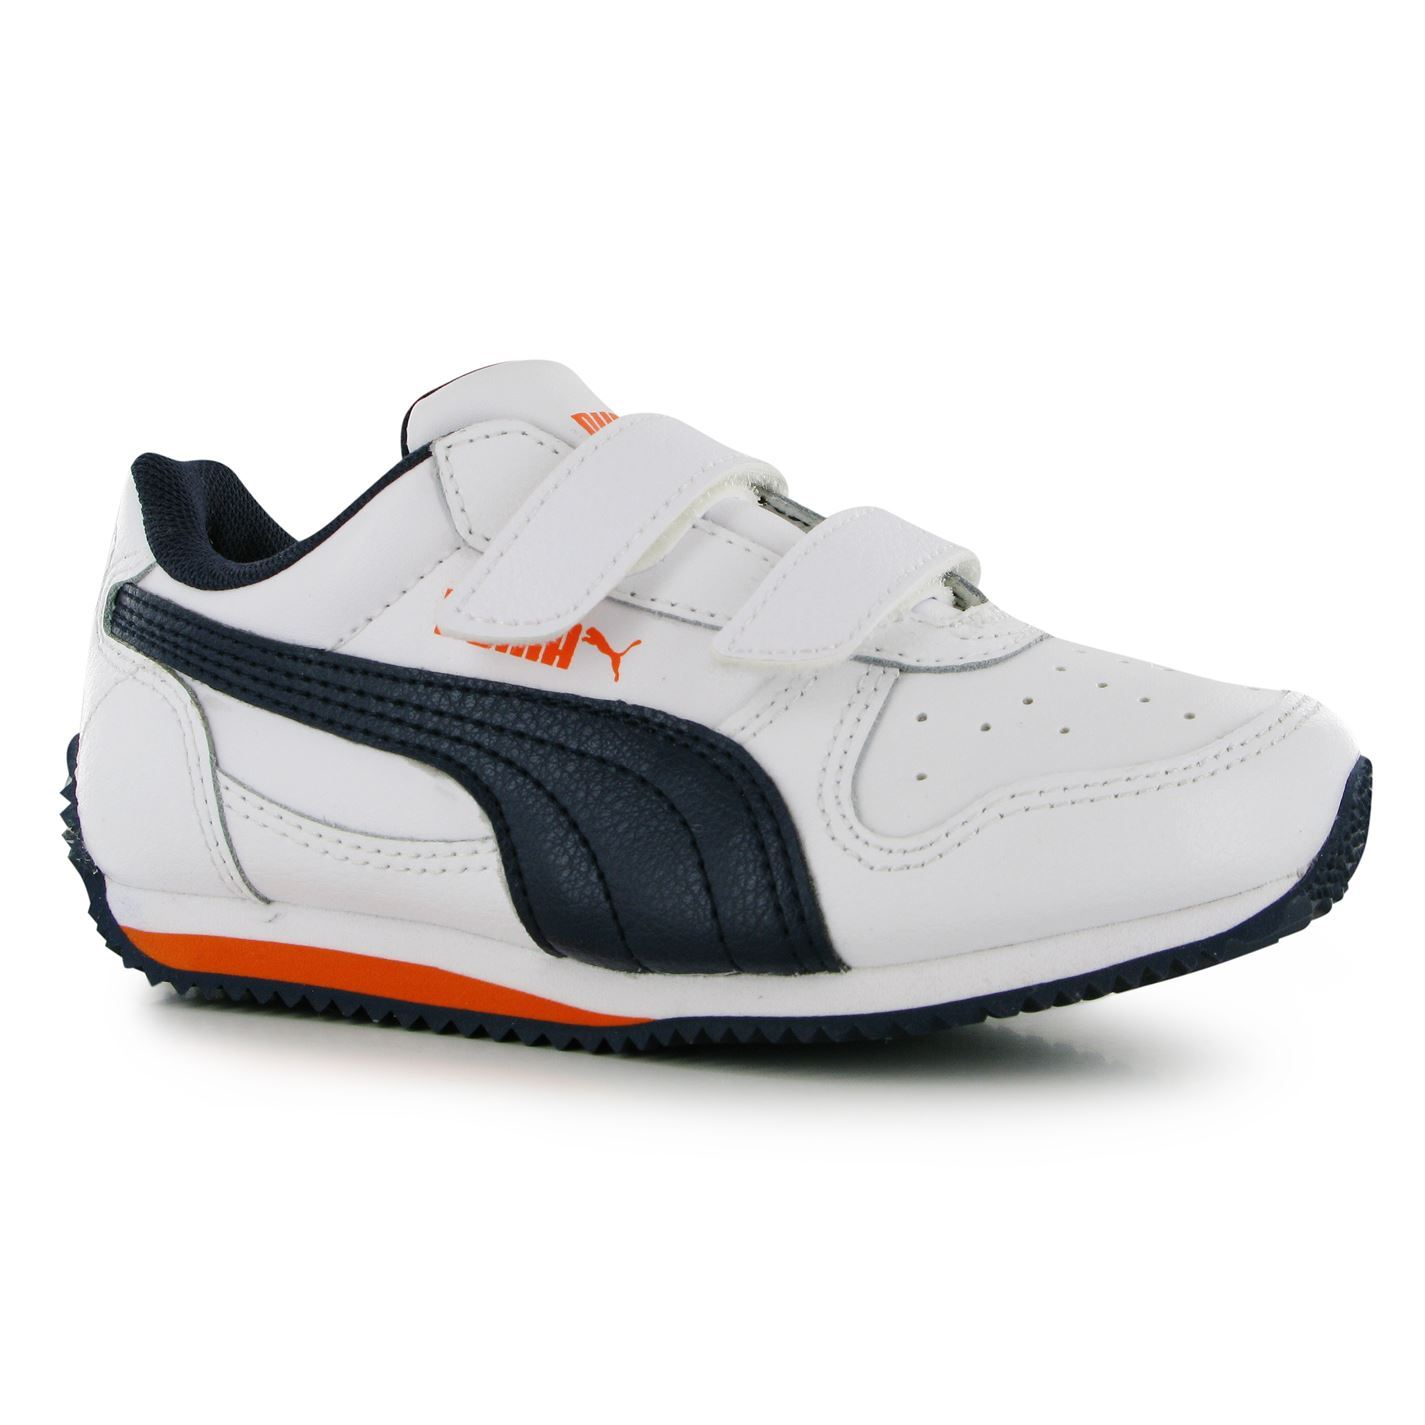 Sport Shoes Direct Shipping Charge